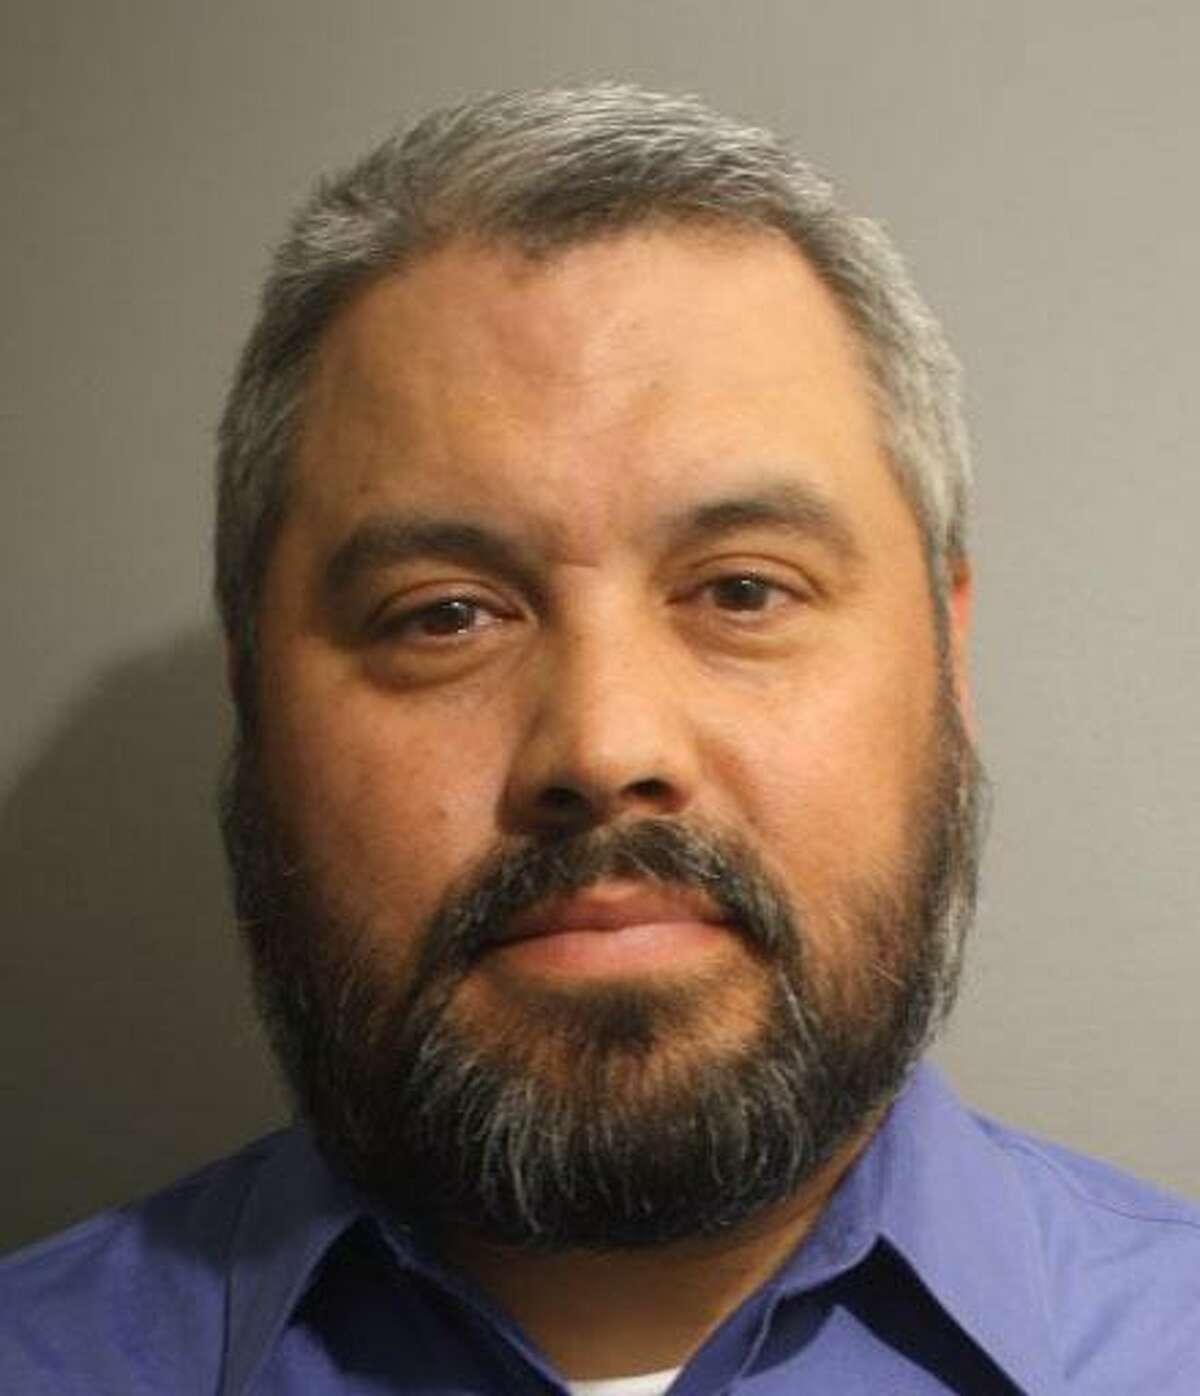 Former Wilton Boosters' Club president Brian Colburn has charged with larceny and forgery.